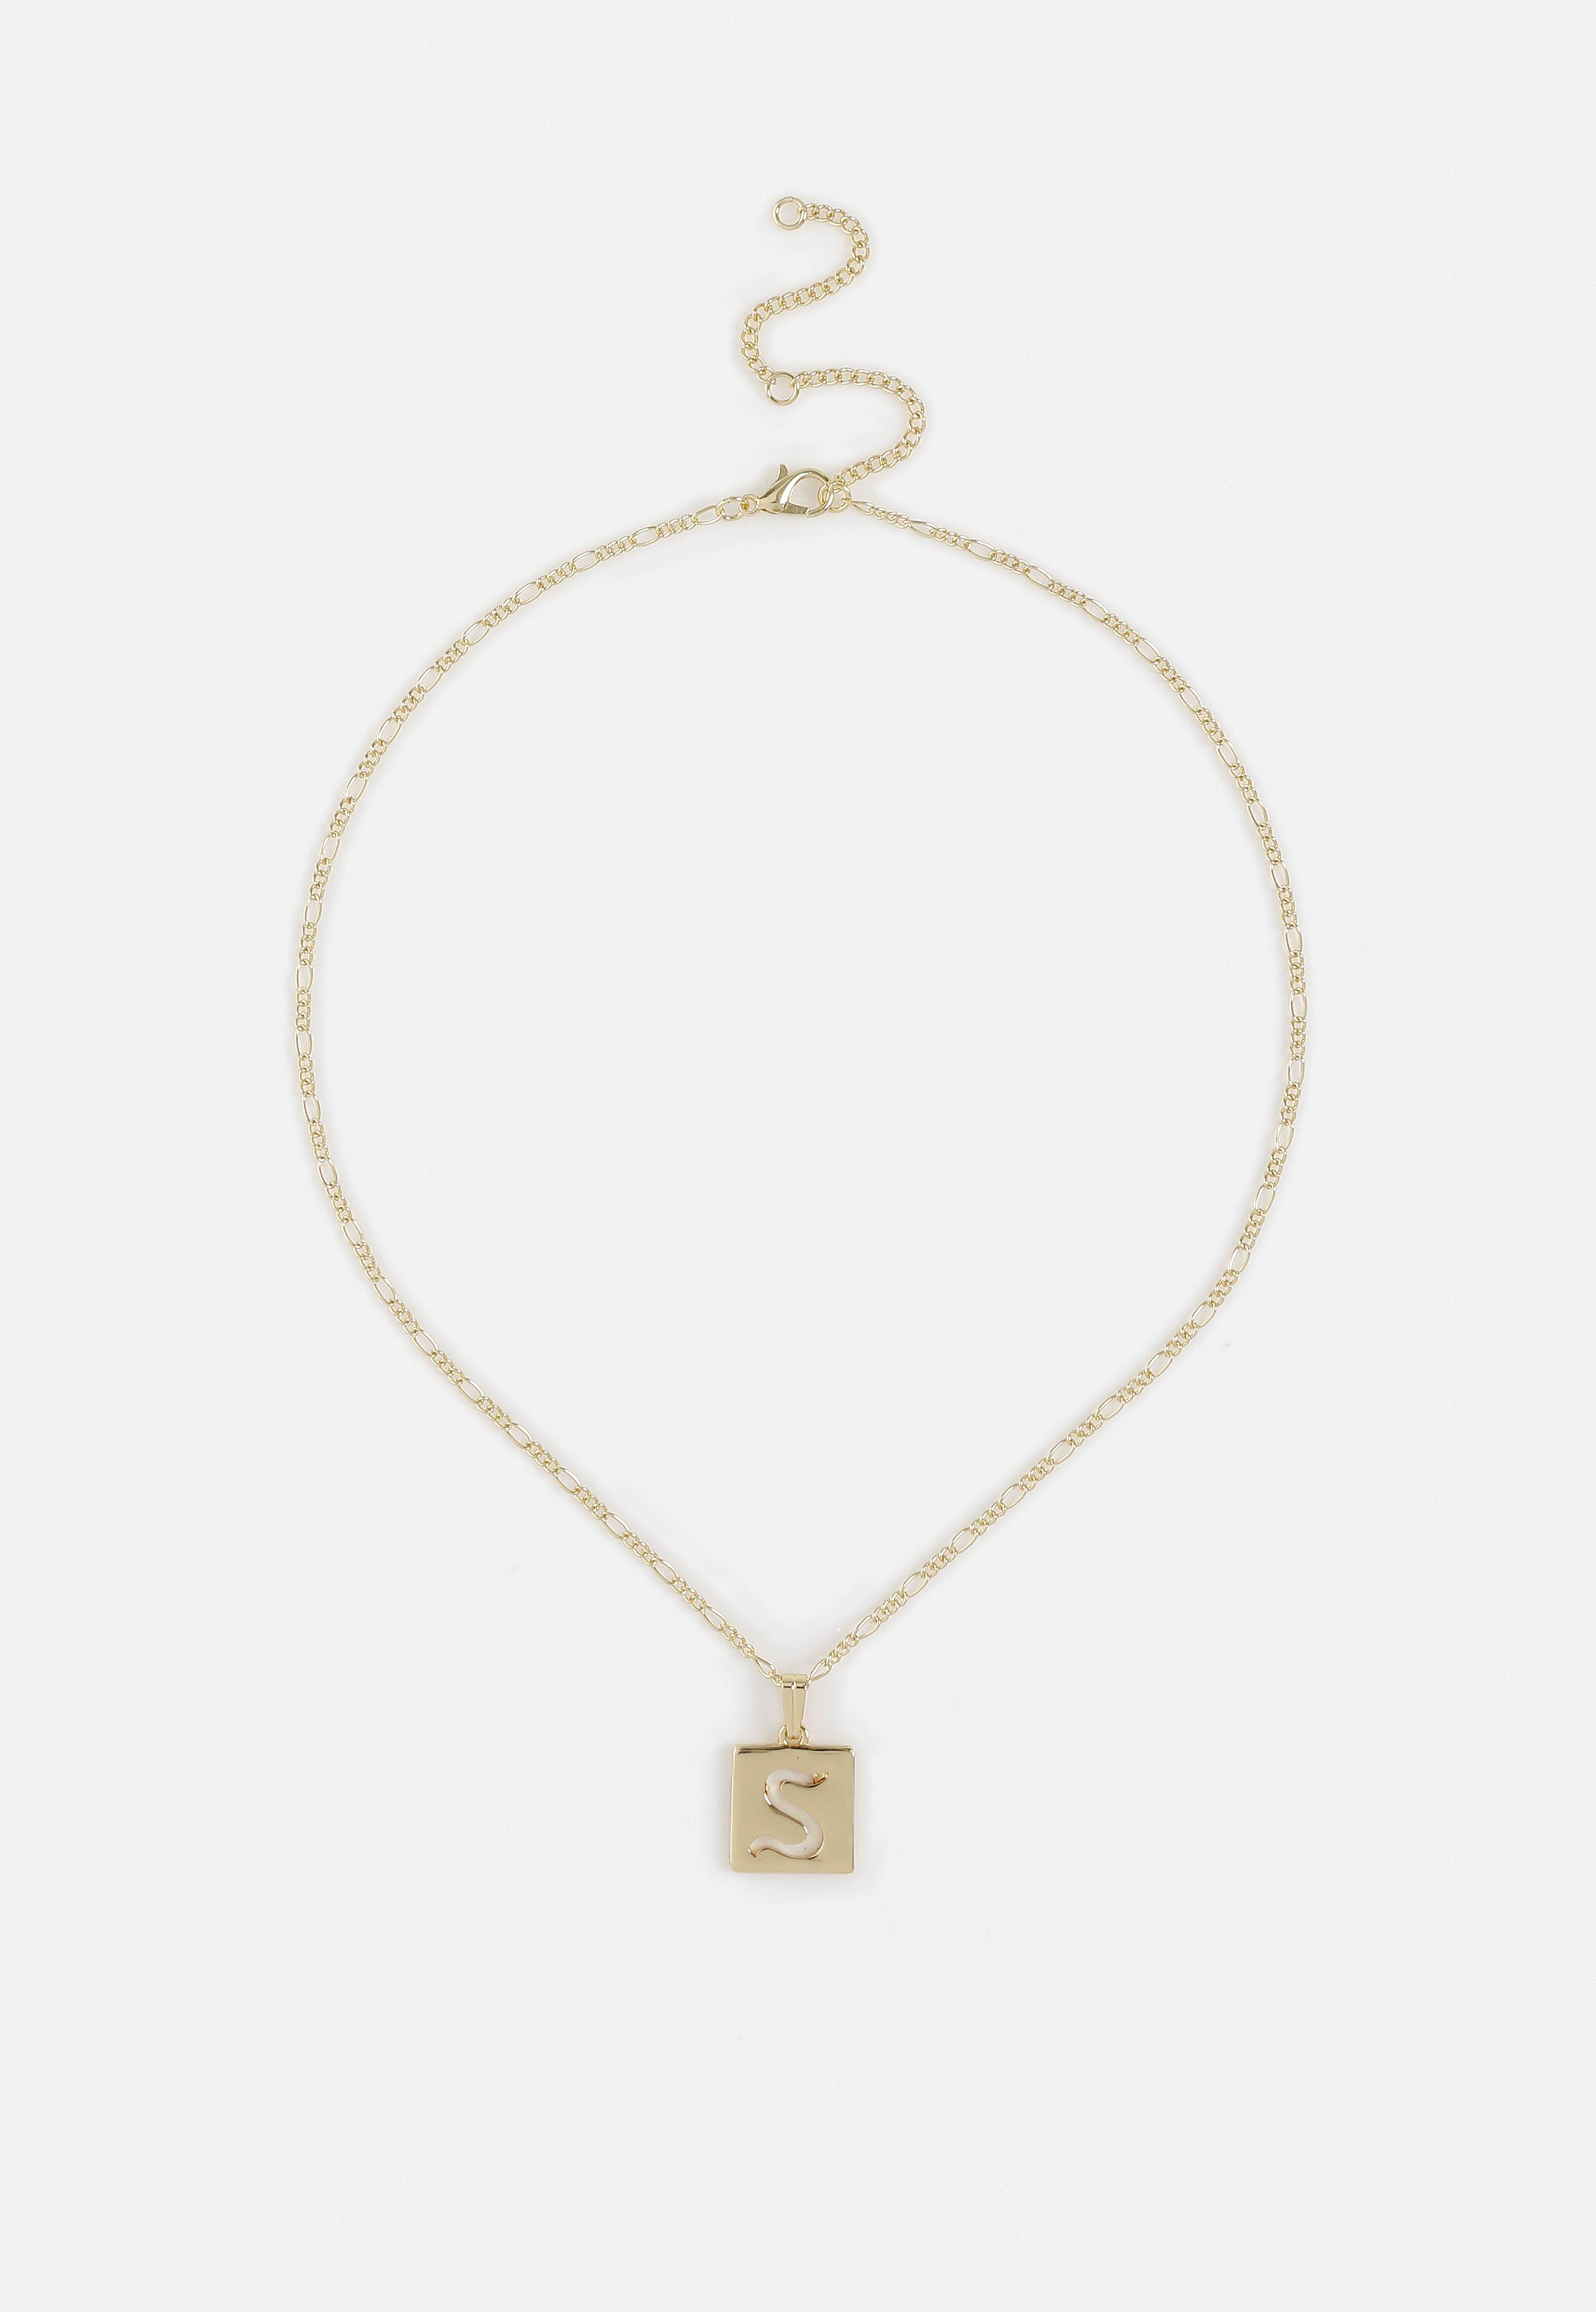 Gold Look E Initial Ditsy Necklace